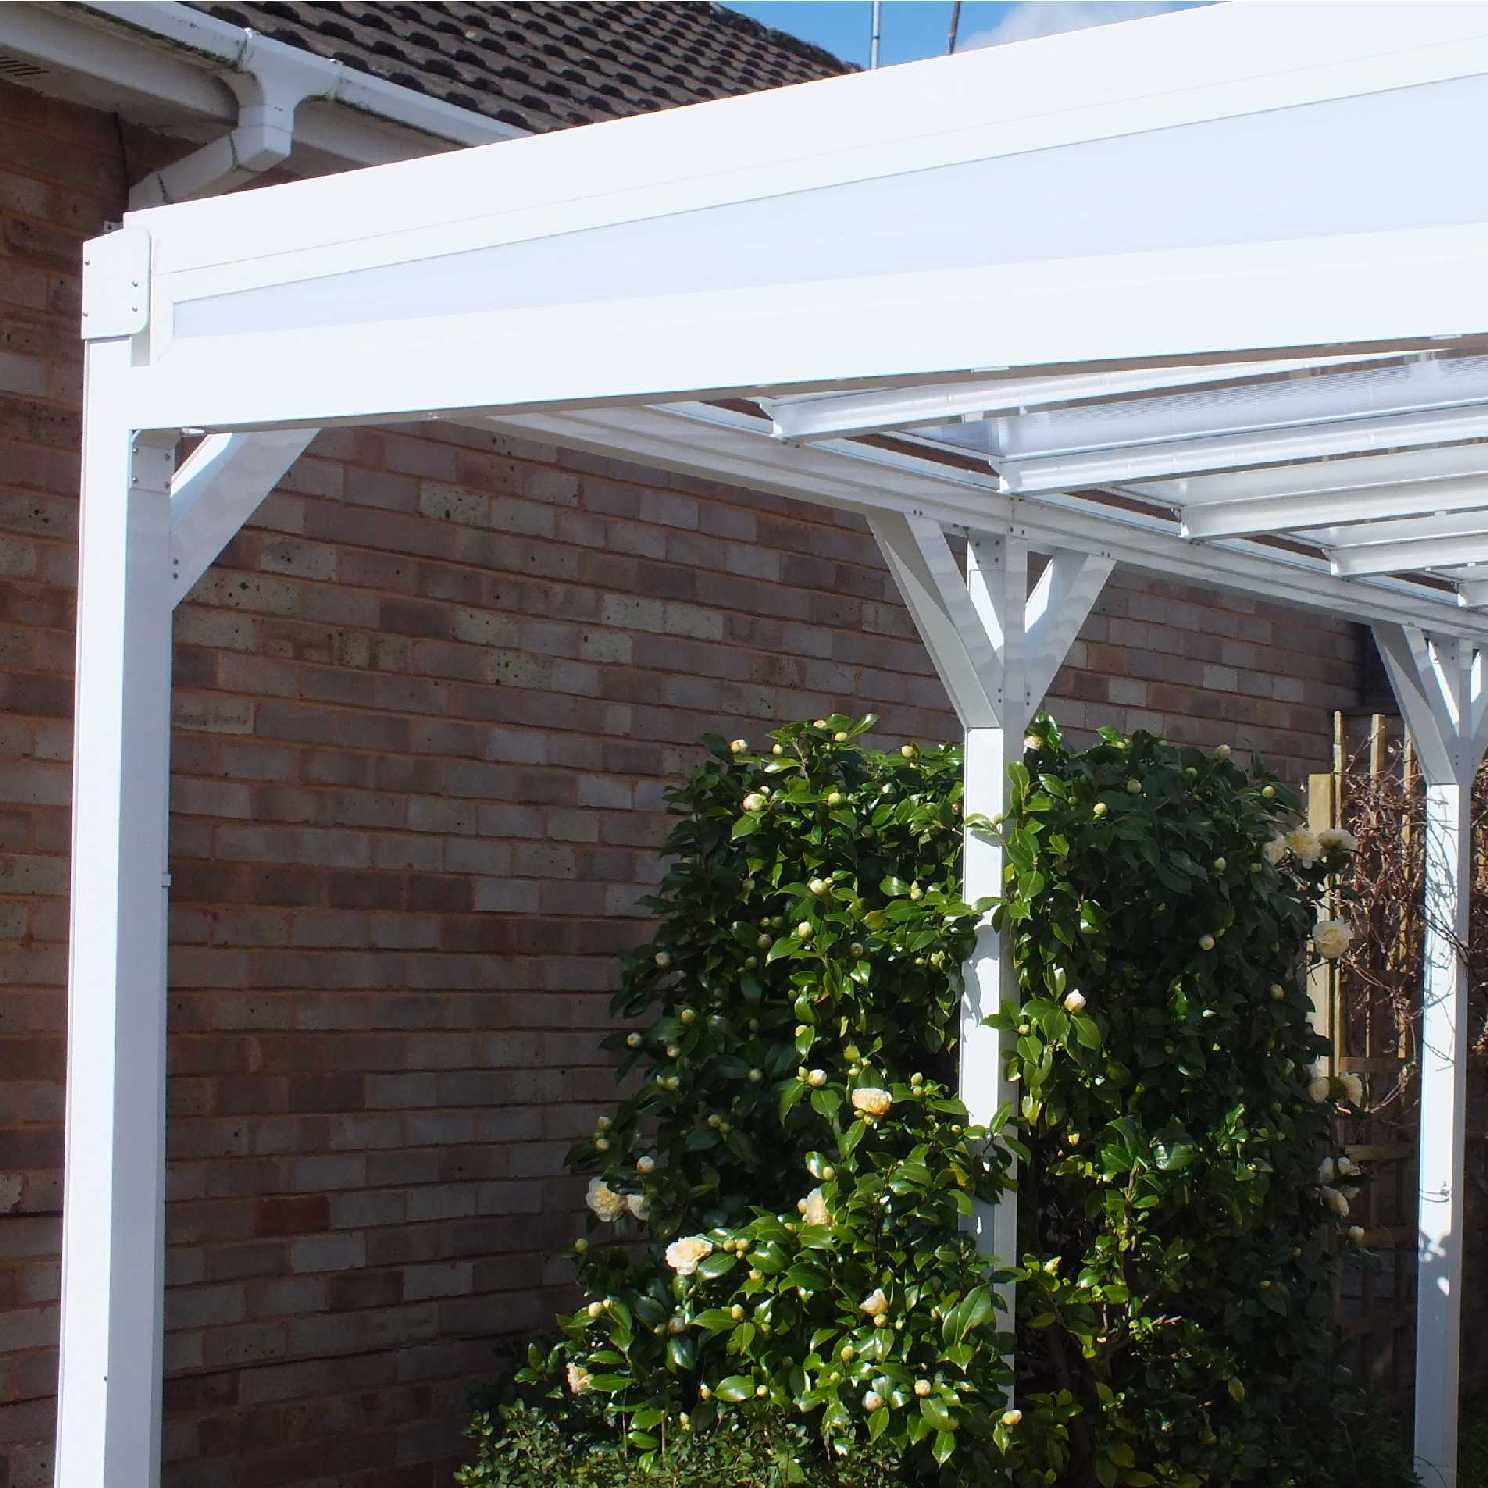 Omega Smart Lean-To Canopy with 16mm Polycarbonate Glazing - 3.1m (W) x 3.0m (P), (2) Supporting Posts from Omega Build